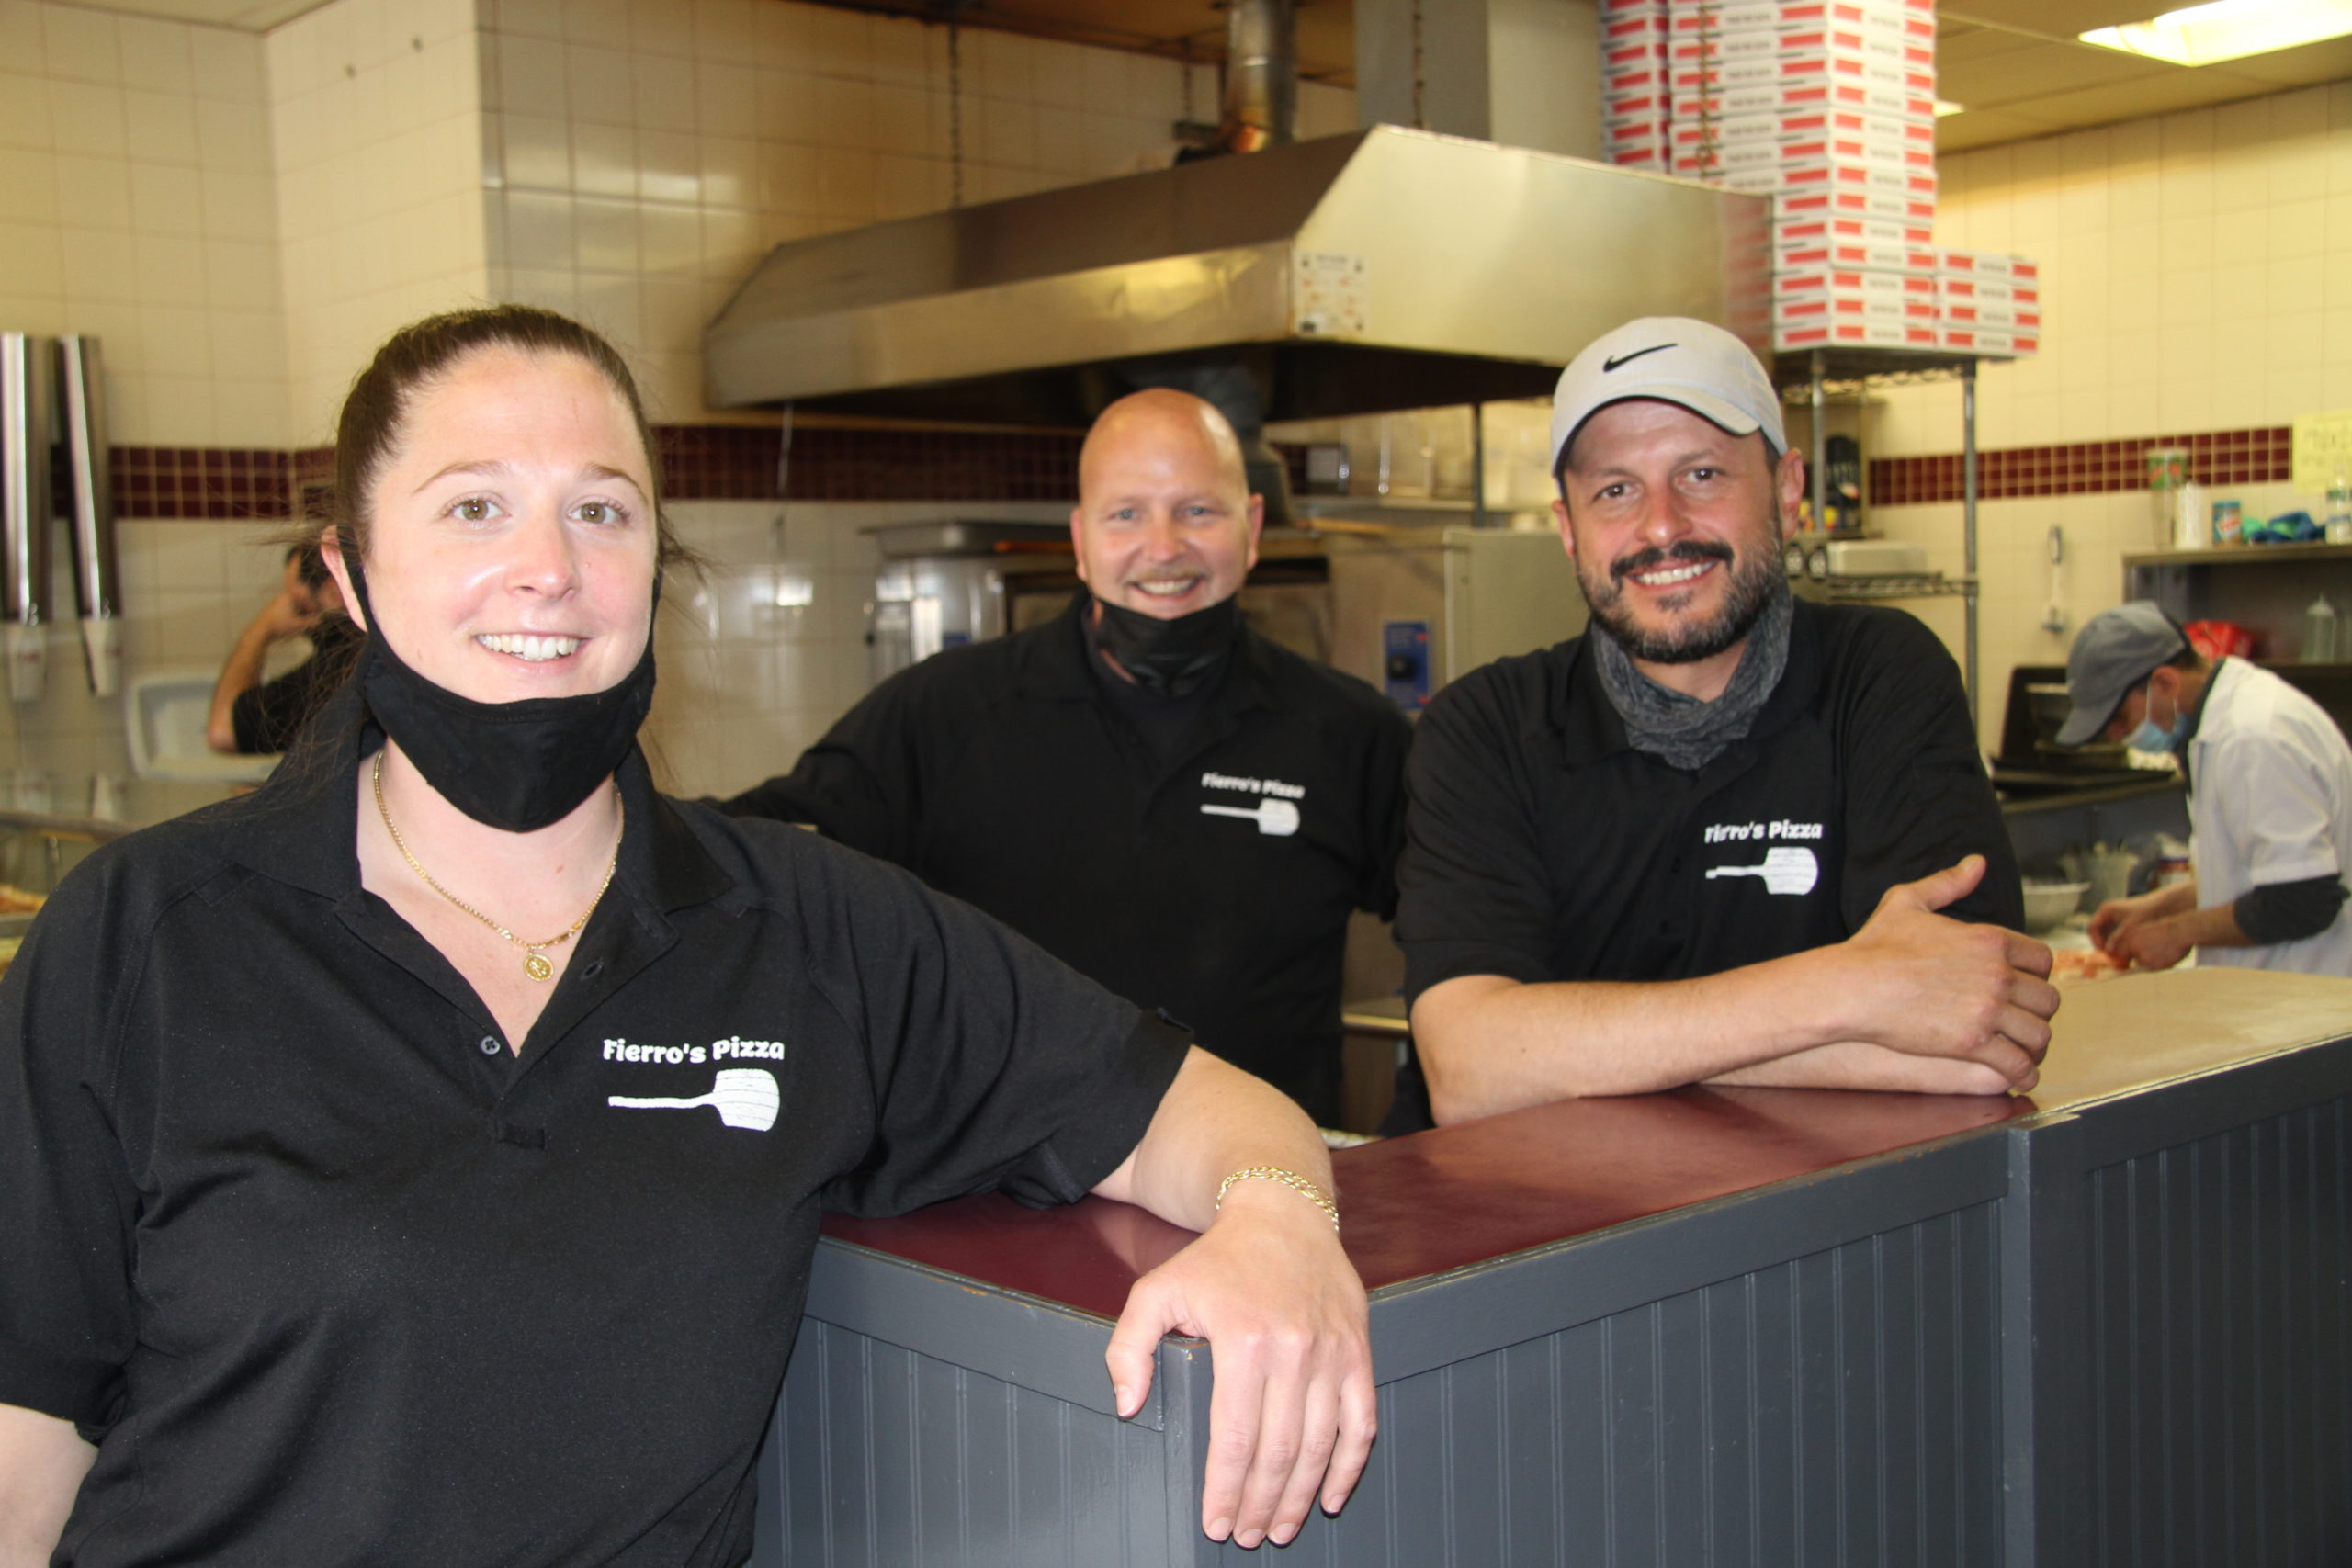 Fiero's Pizza co-owner Steve Hickey, rear, officially has two new partners this week: East Hampton natives Emma Beudert and Joe Kastrati.